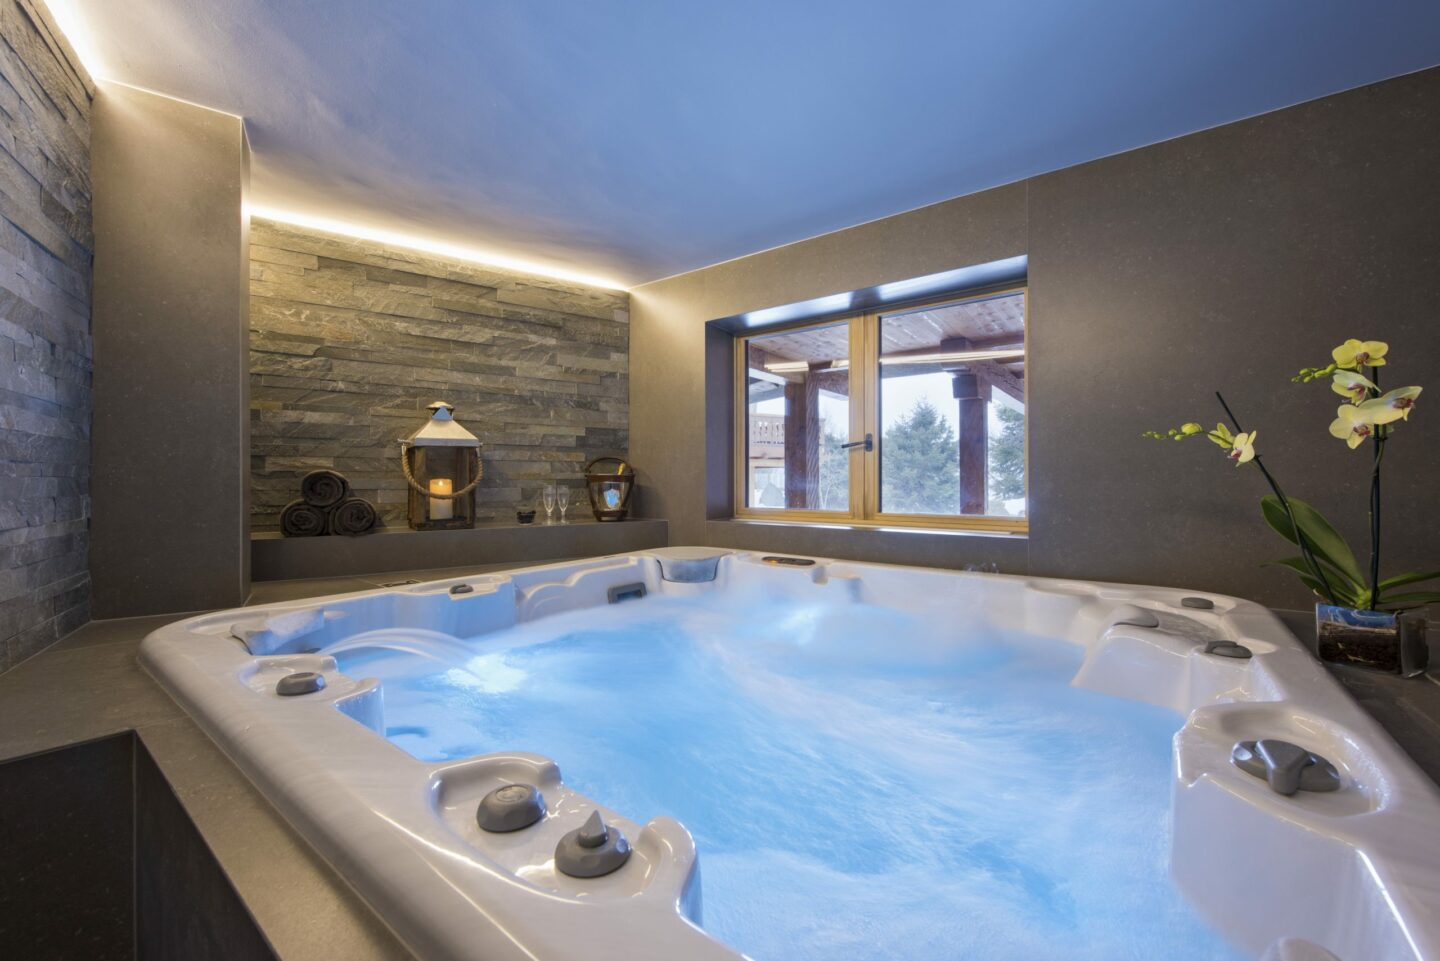 Hot tub in spa at Chalet Delormes in Verbier